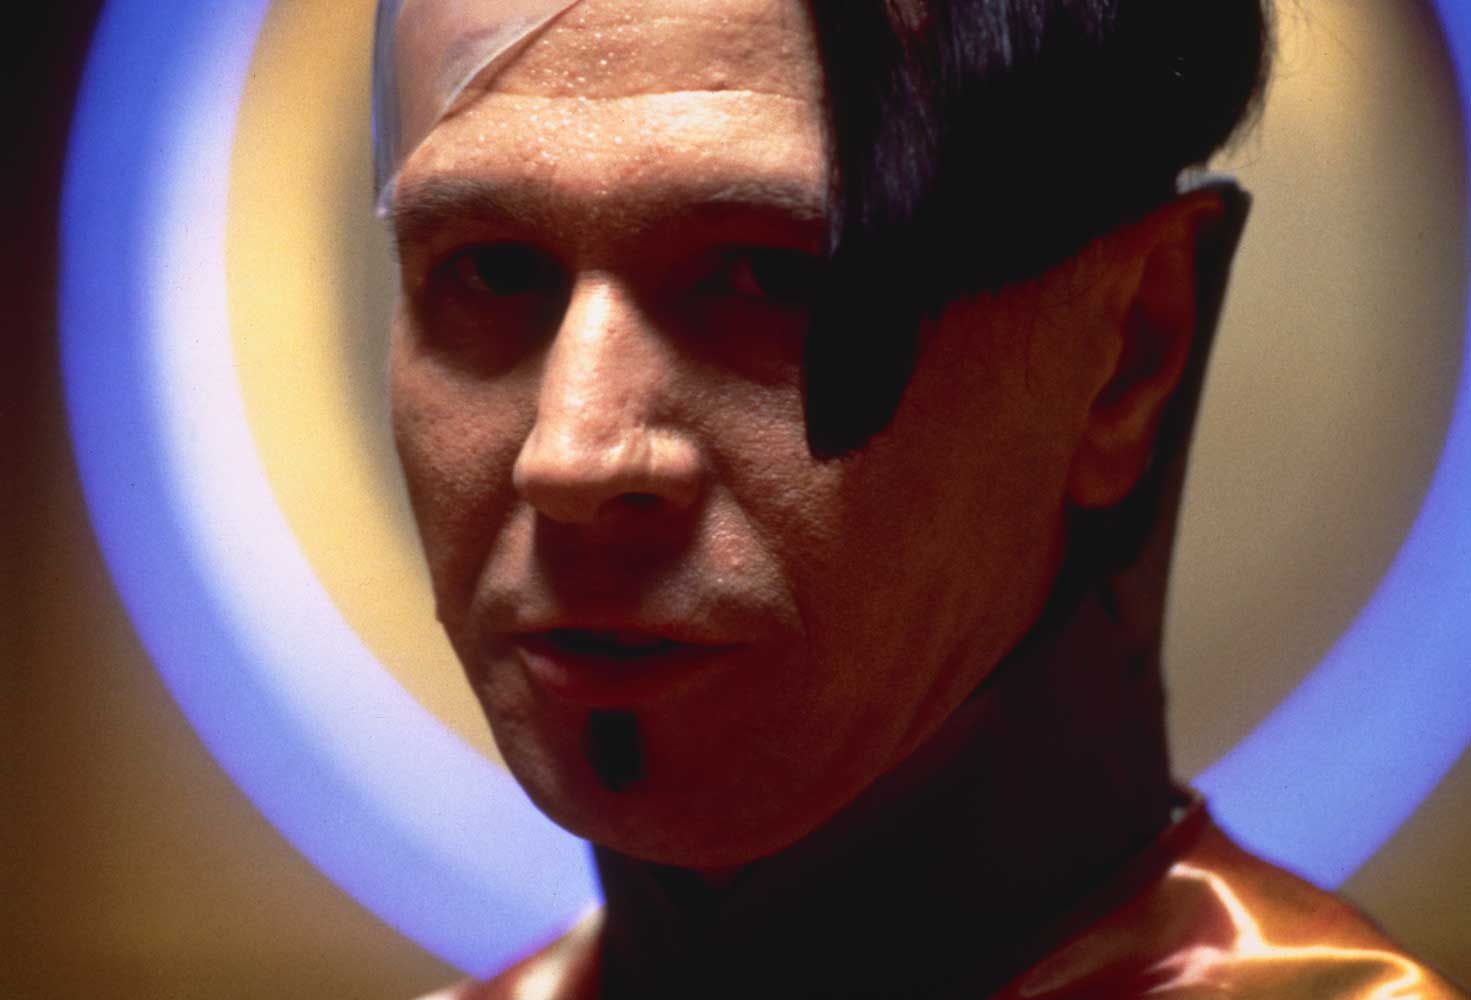 Gary Oldman as Jean-Baptiste Emanuel Zorg in The Fifth Element (1997)